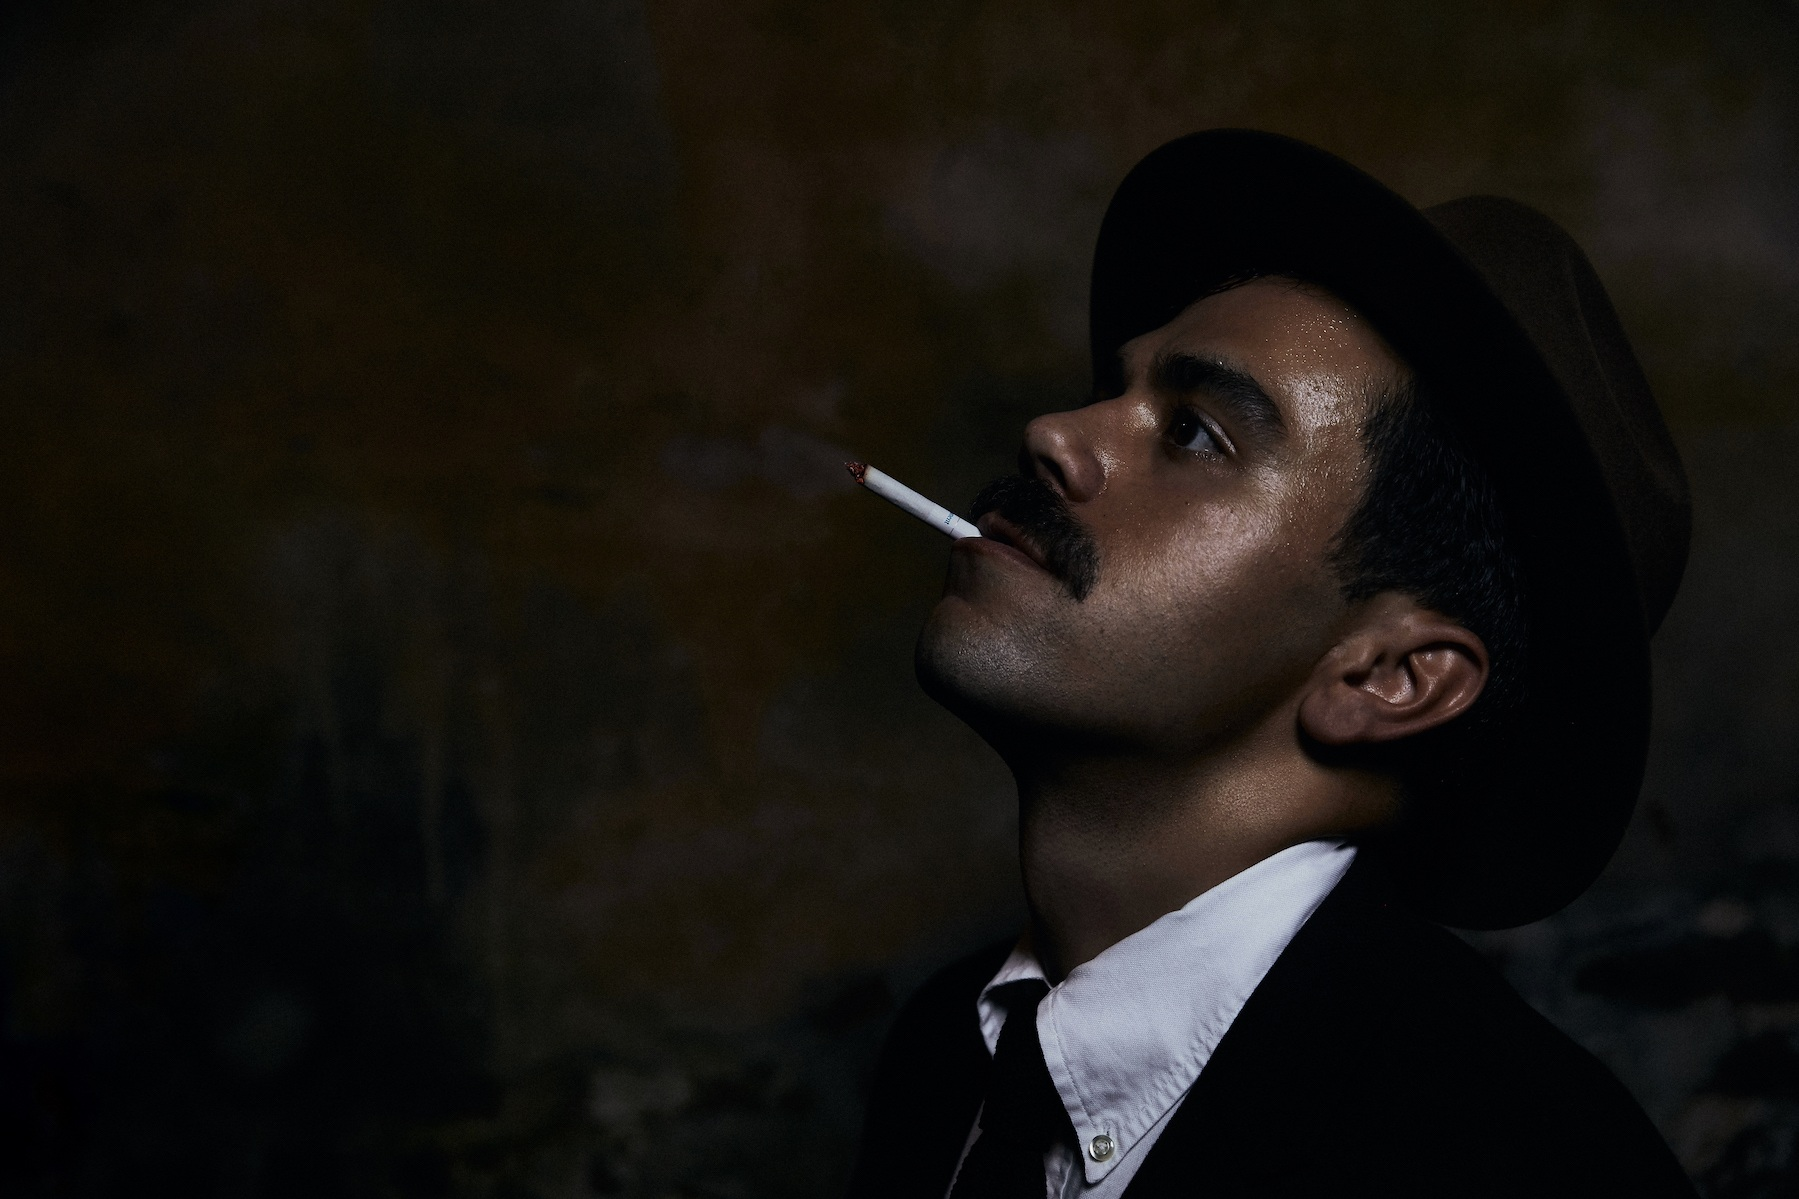 KRC Man Smoking with Hat.jpg